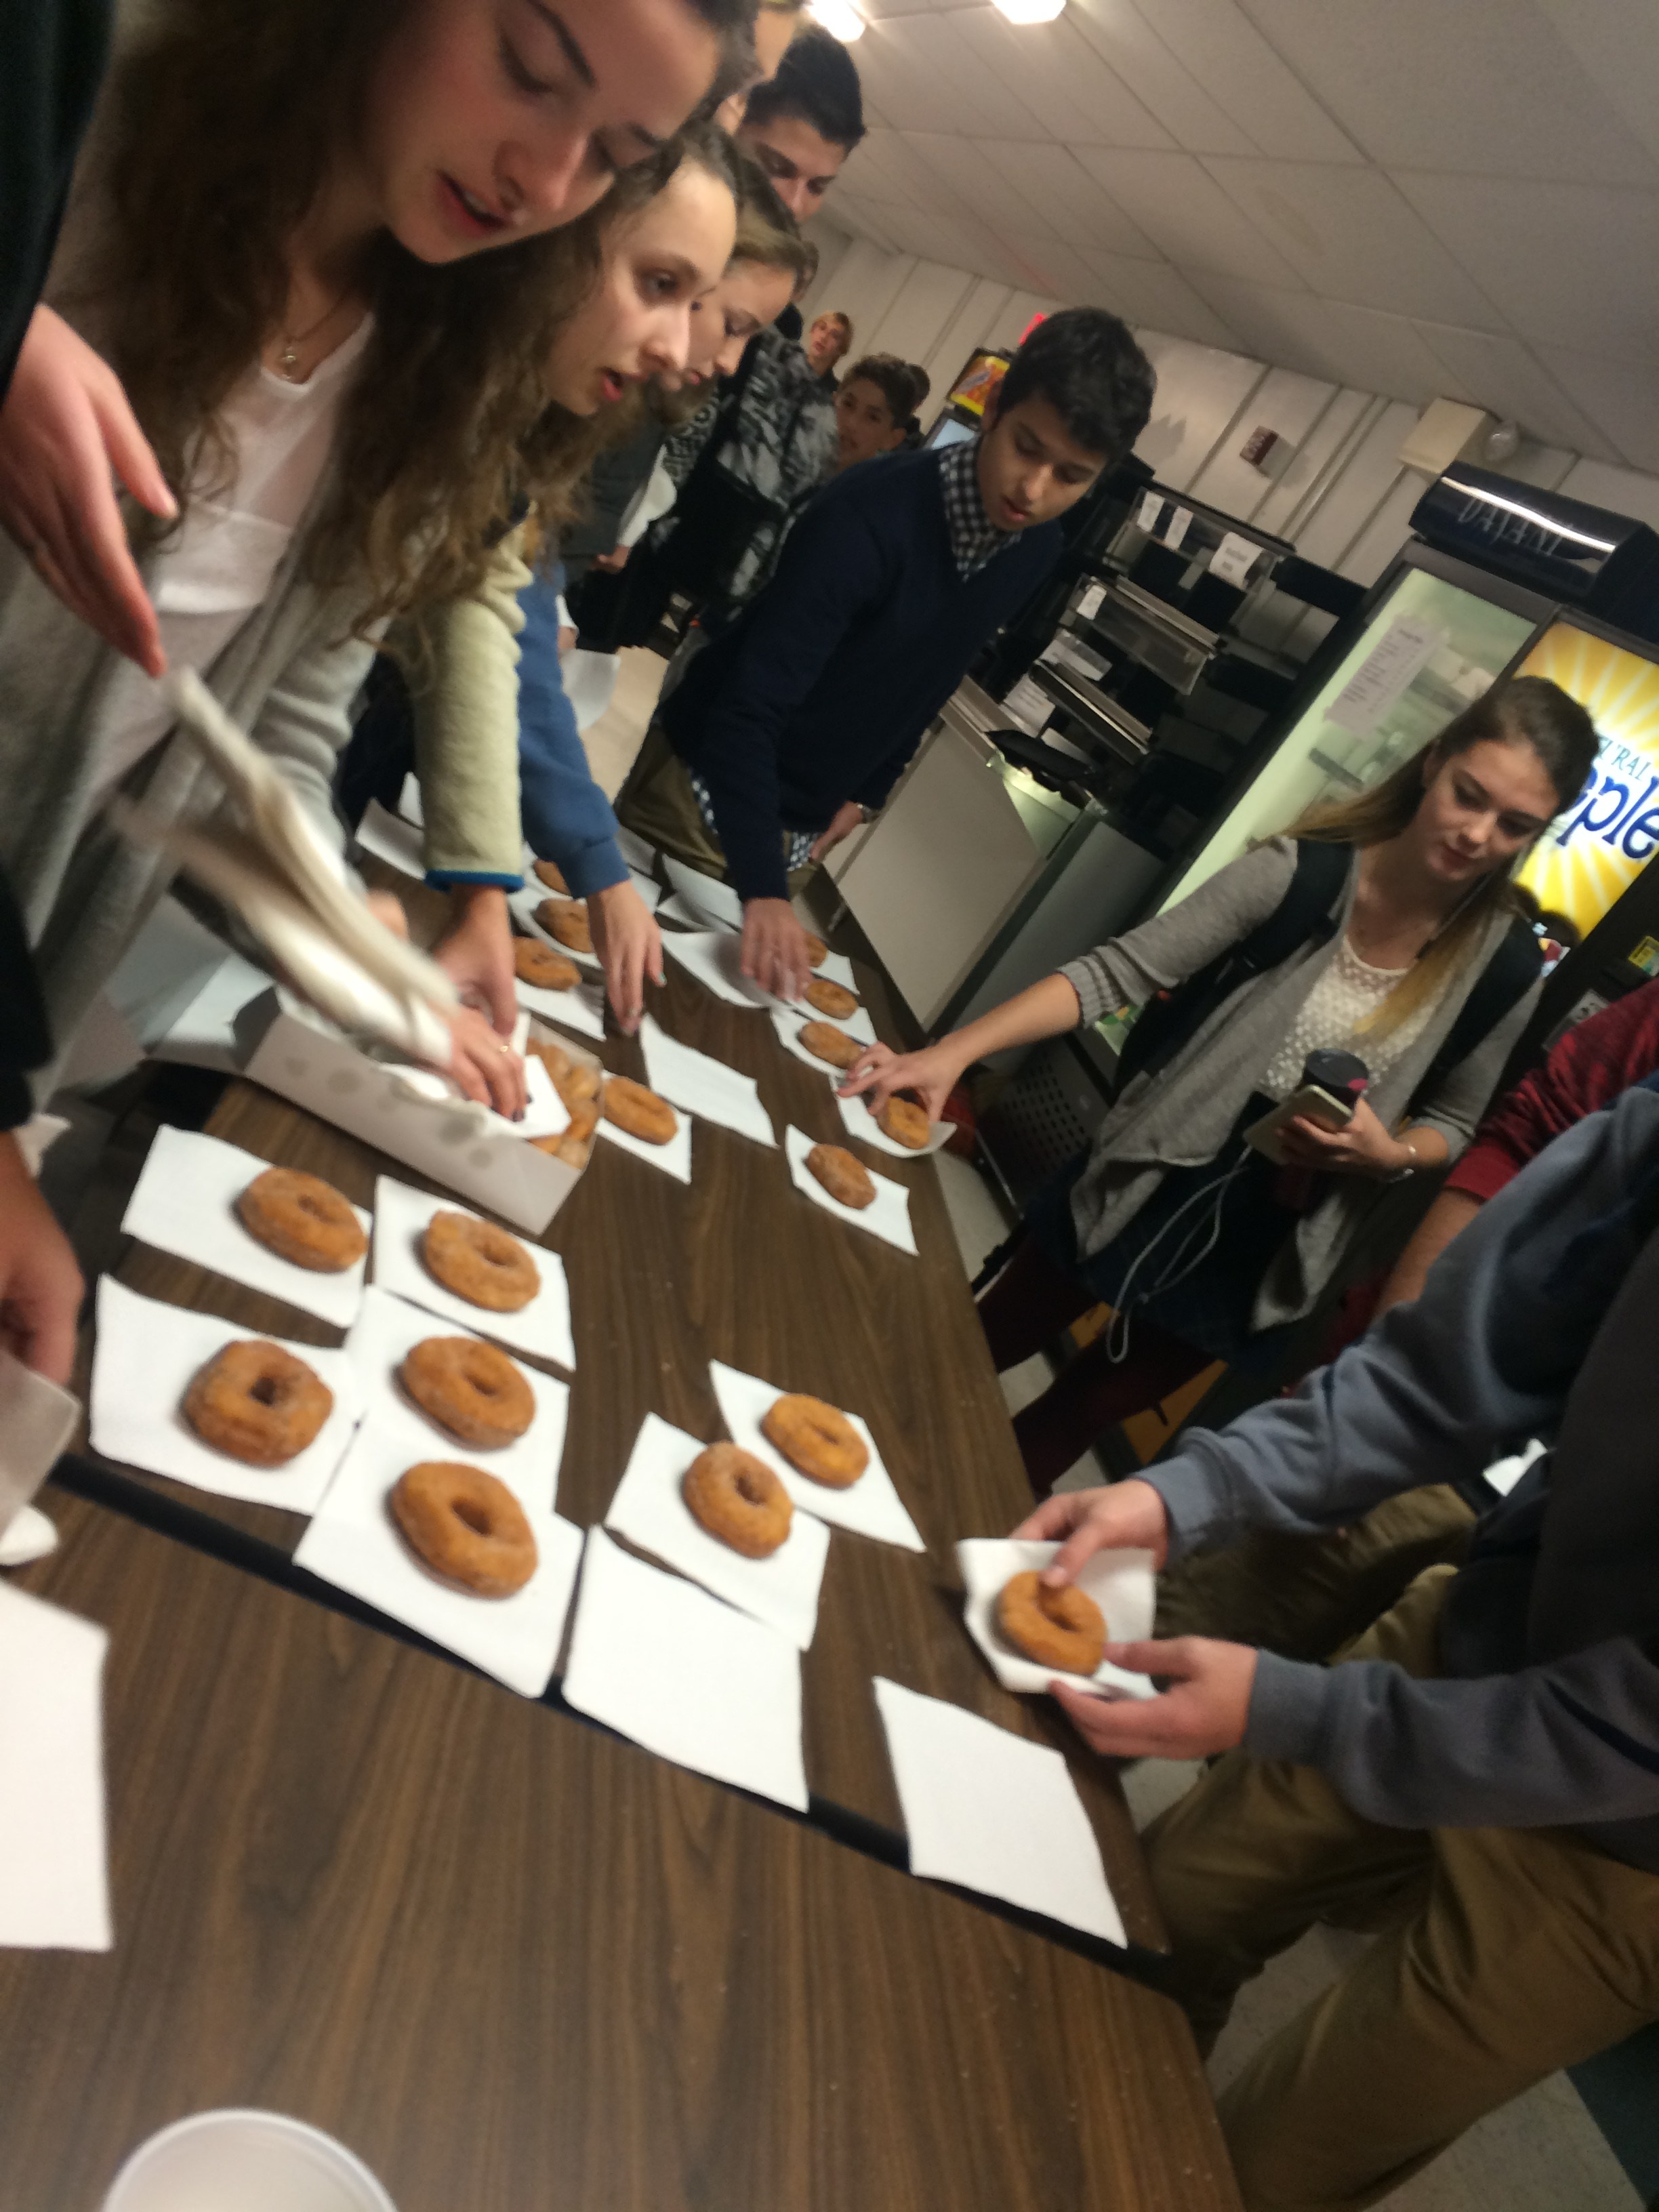 Students buy doughnuts at the Student Council fundraising event